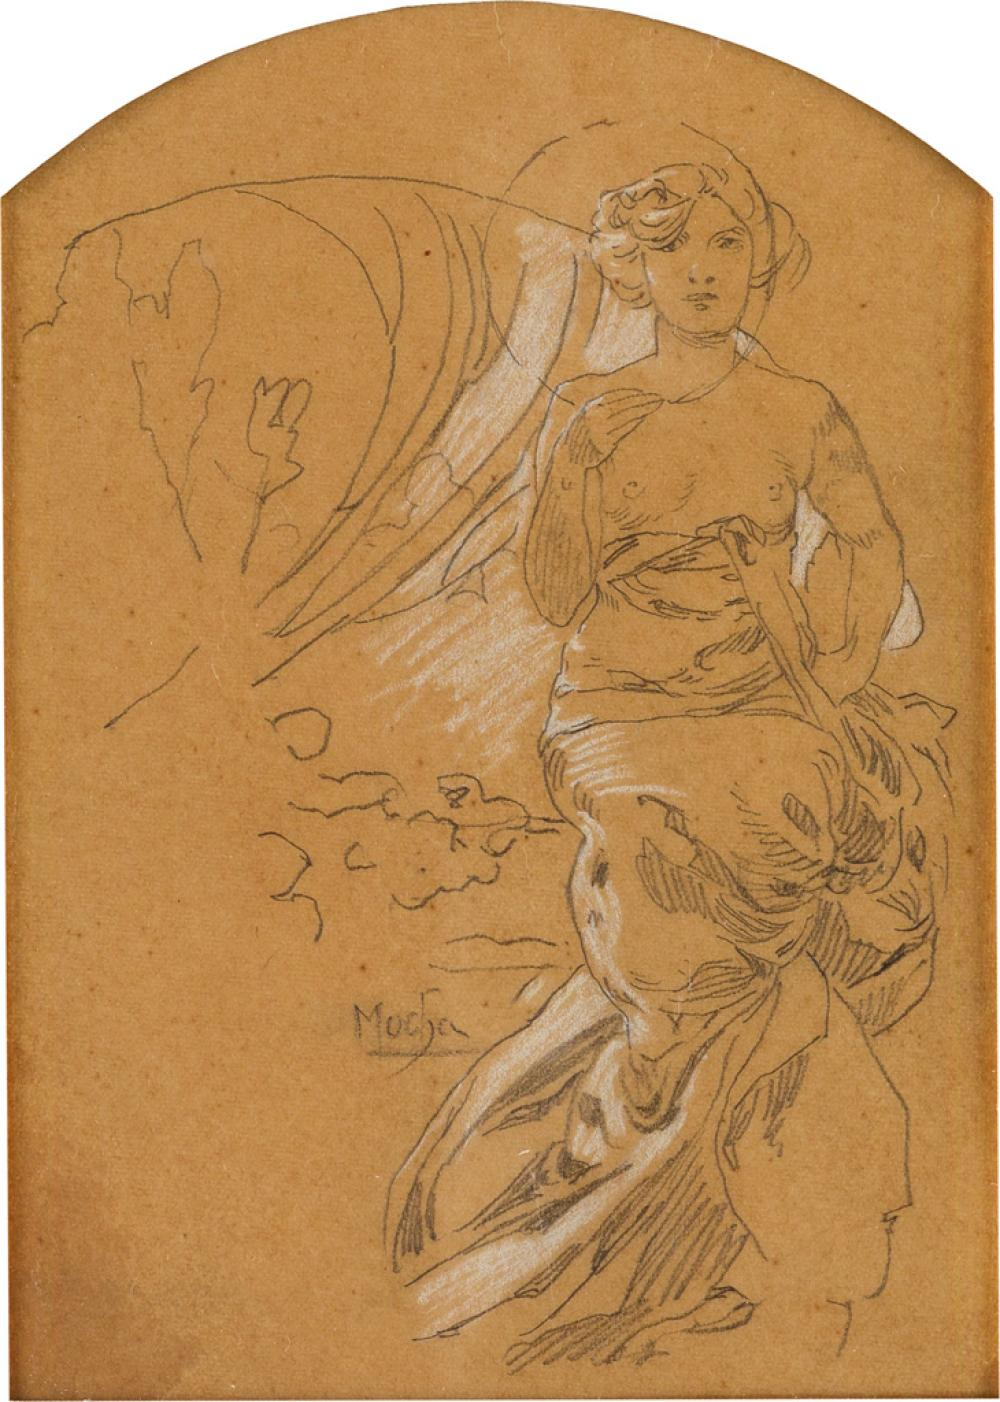 ALPHONSE MUCHA (1860-1939). [DOCUMENTS DÉCORATIFS.] Preparatory pencil sketch with white pencil highlights. Circa 1905. Approximately 7